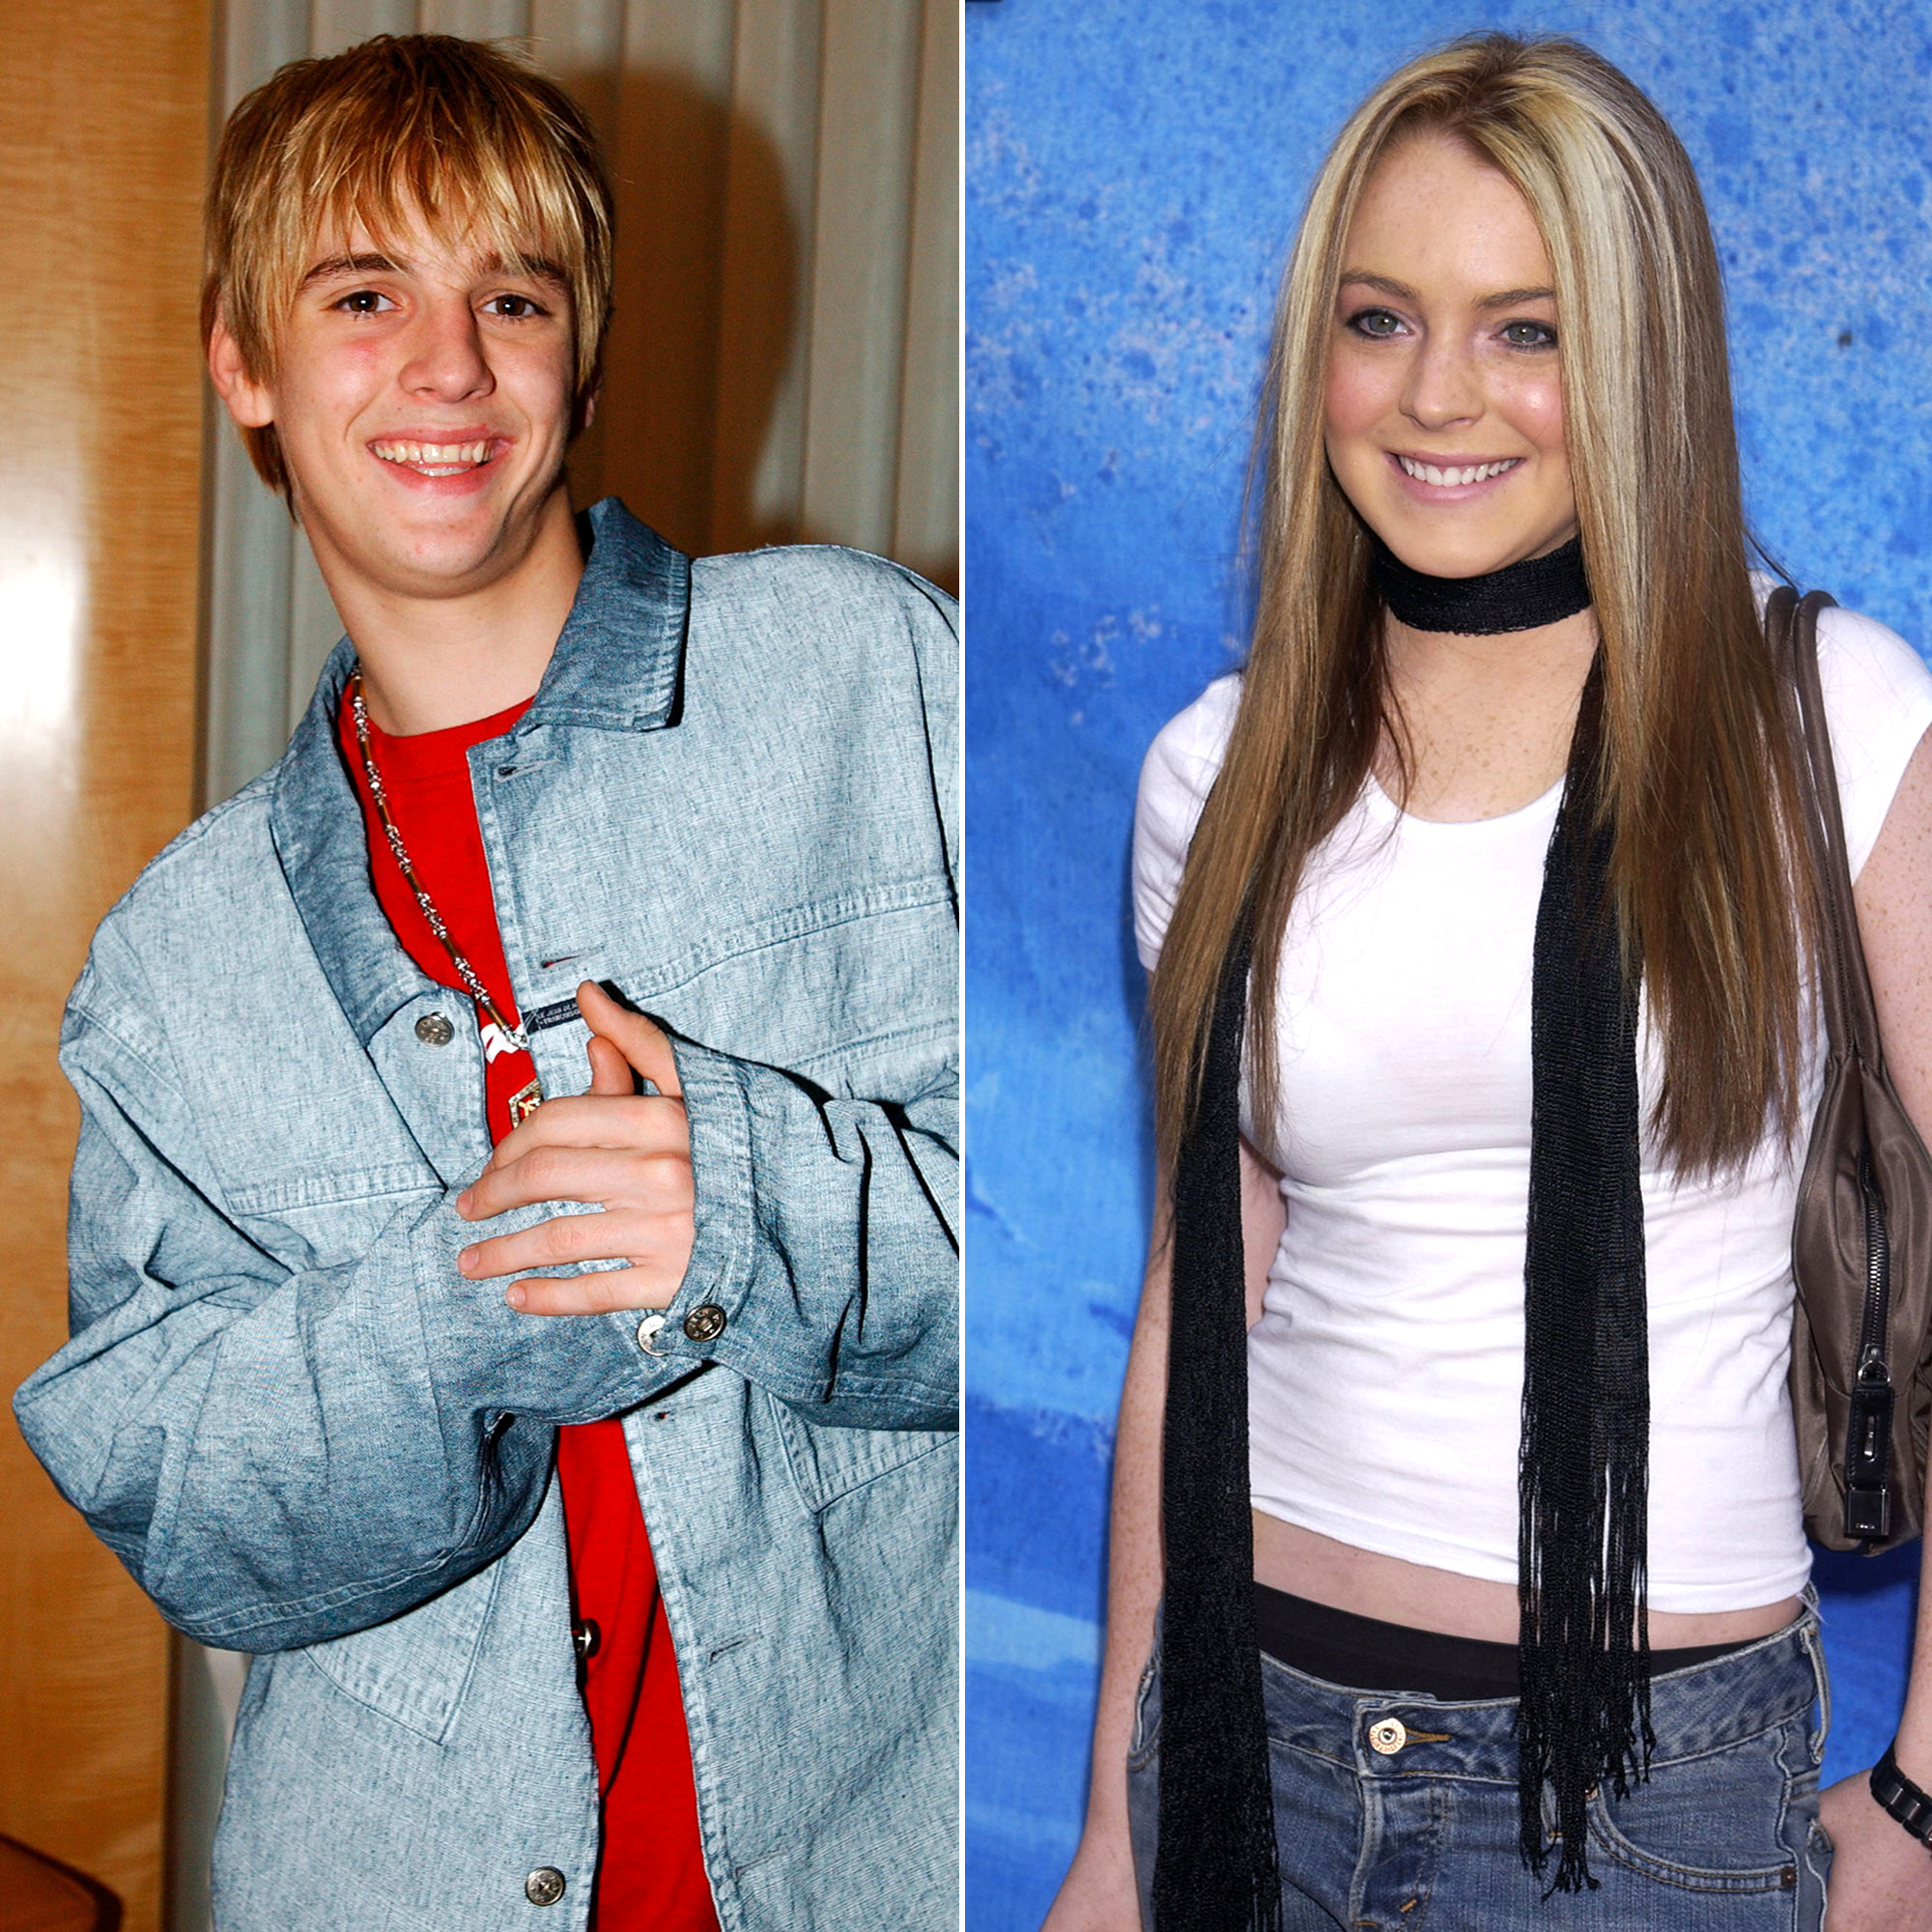 """Lindsay Lohan love life gallery - The former teen idol started seeing Lohan around 2003 after he dated Hilary Duff for a year and a half. """"I just got a little bored [with Duff], so I went and I started getting to know Lindsay, dating Lindsay,"""" he said in a 2005 interview."""